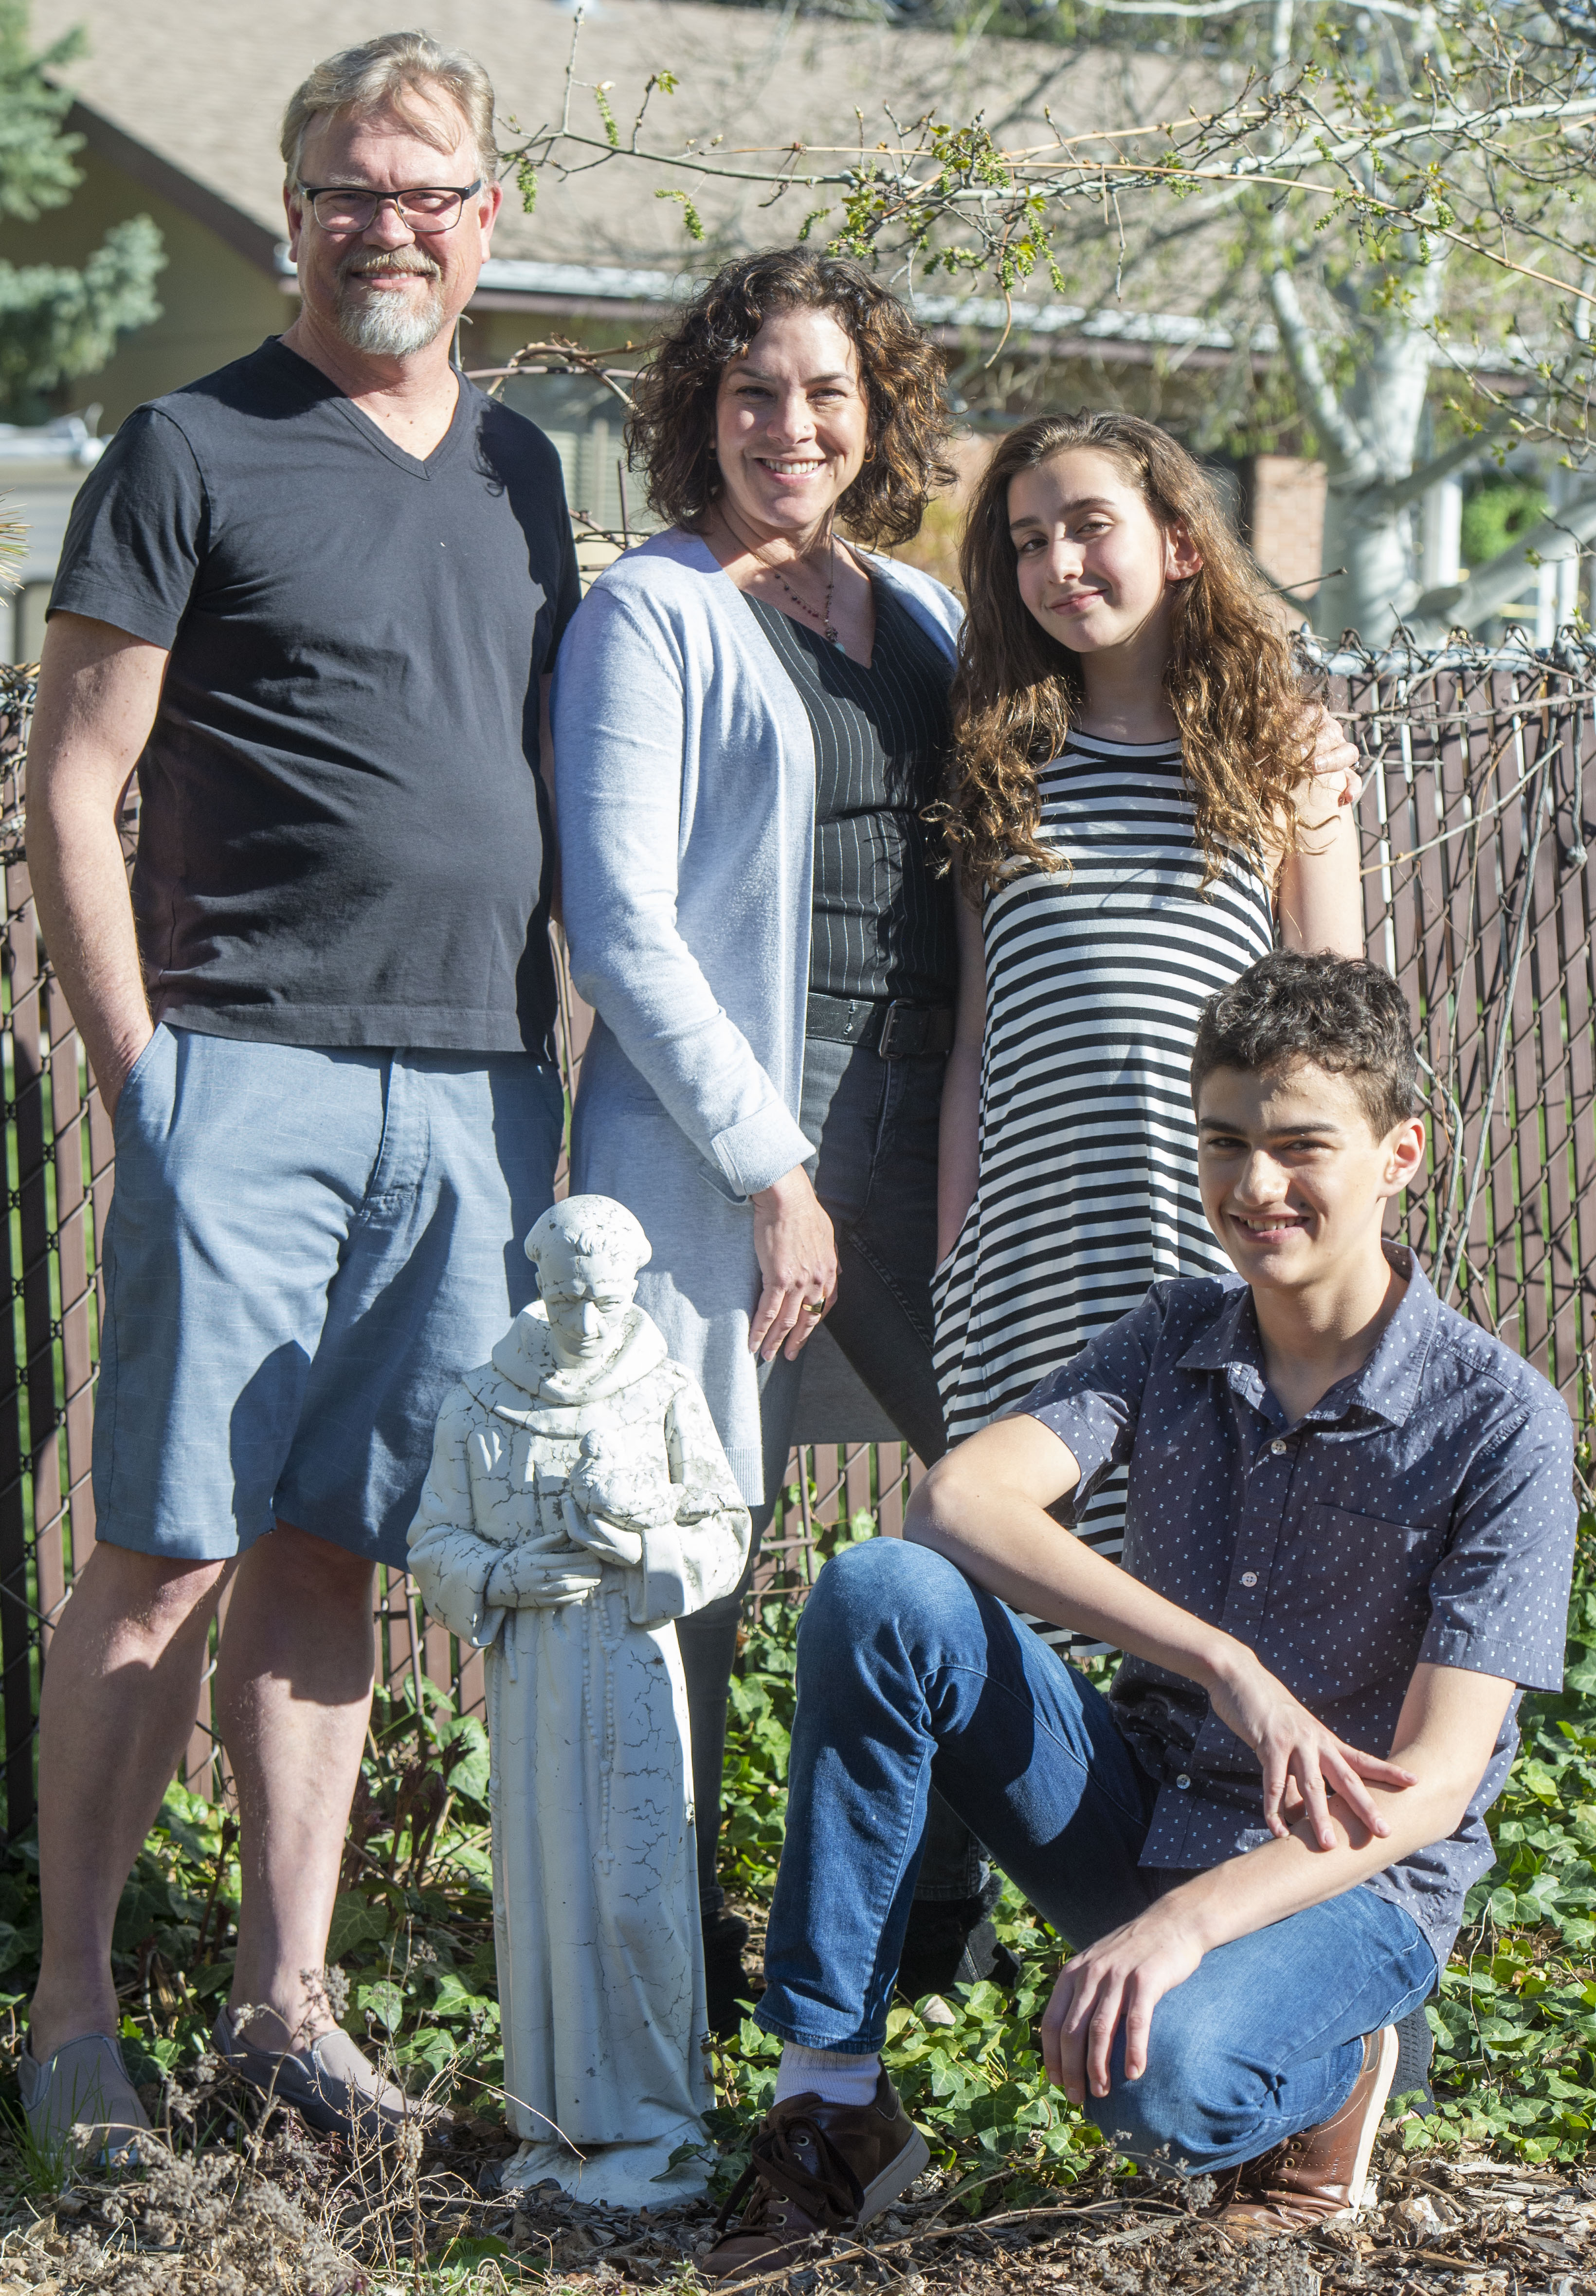 (Rick Egan  |  The Salt Lake Tribune)    Stephen Washburn, April Washburn, Zoe Dobiner, and Aiden Dobiner, by a statue of St. Francis in their front garden.  Stephen and April Washburn are an interfaith couple. He is Episcopalian, she's Jewish. Thursday, April 18, 2019.